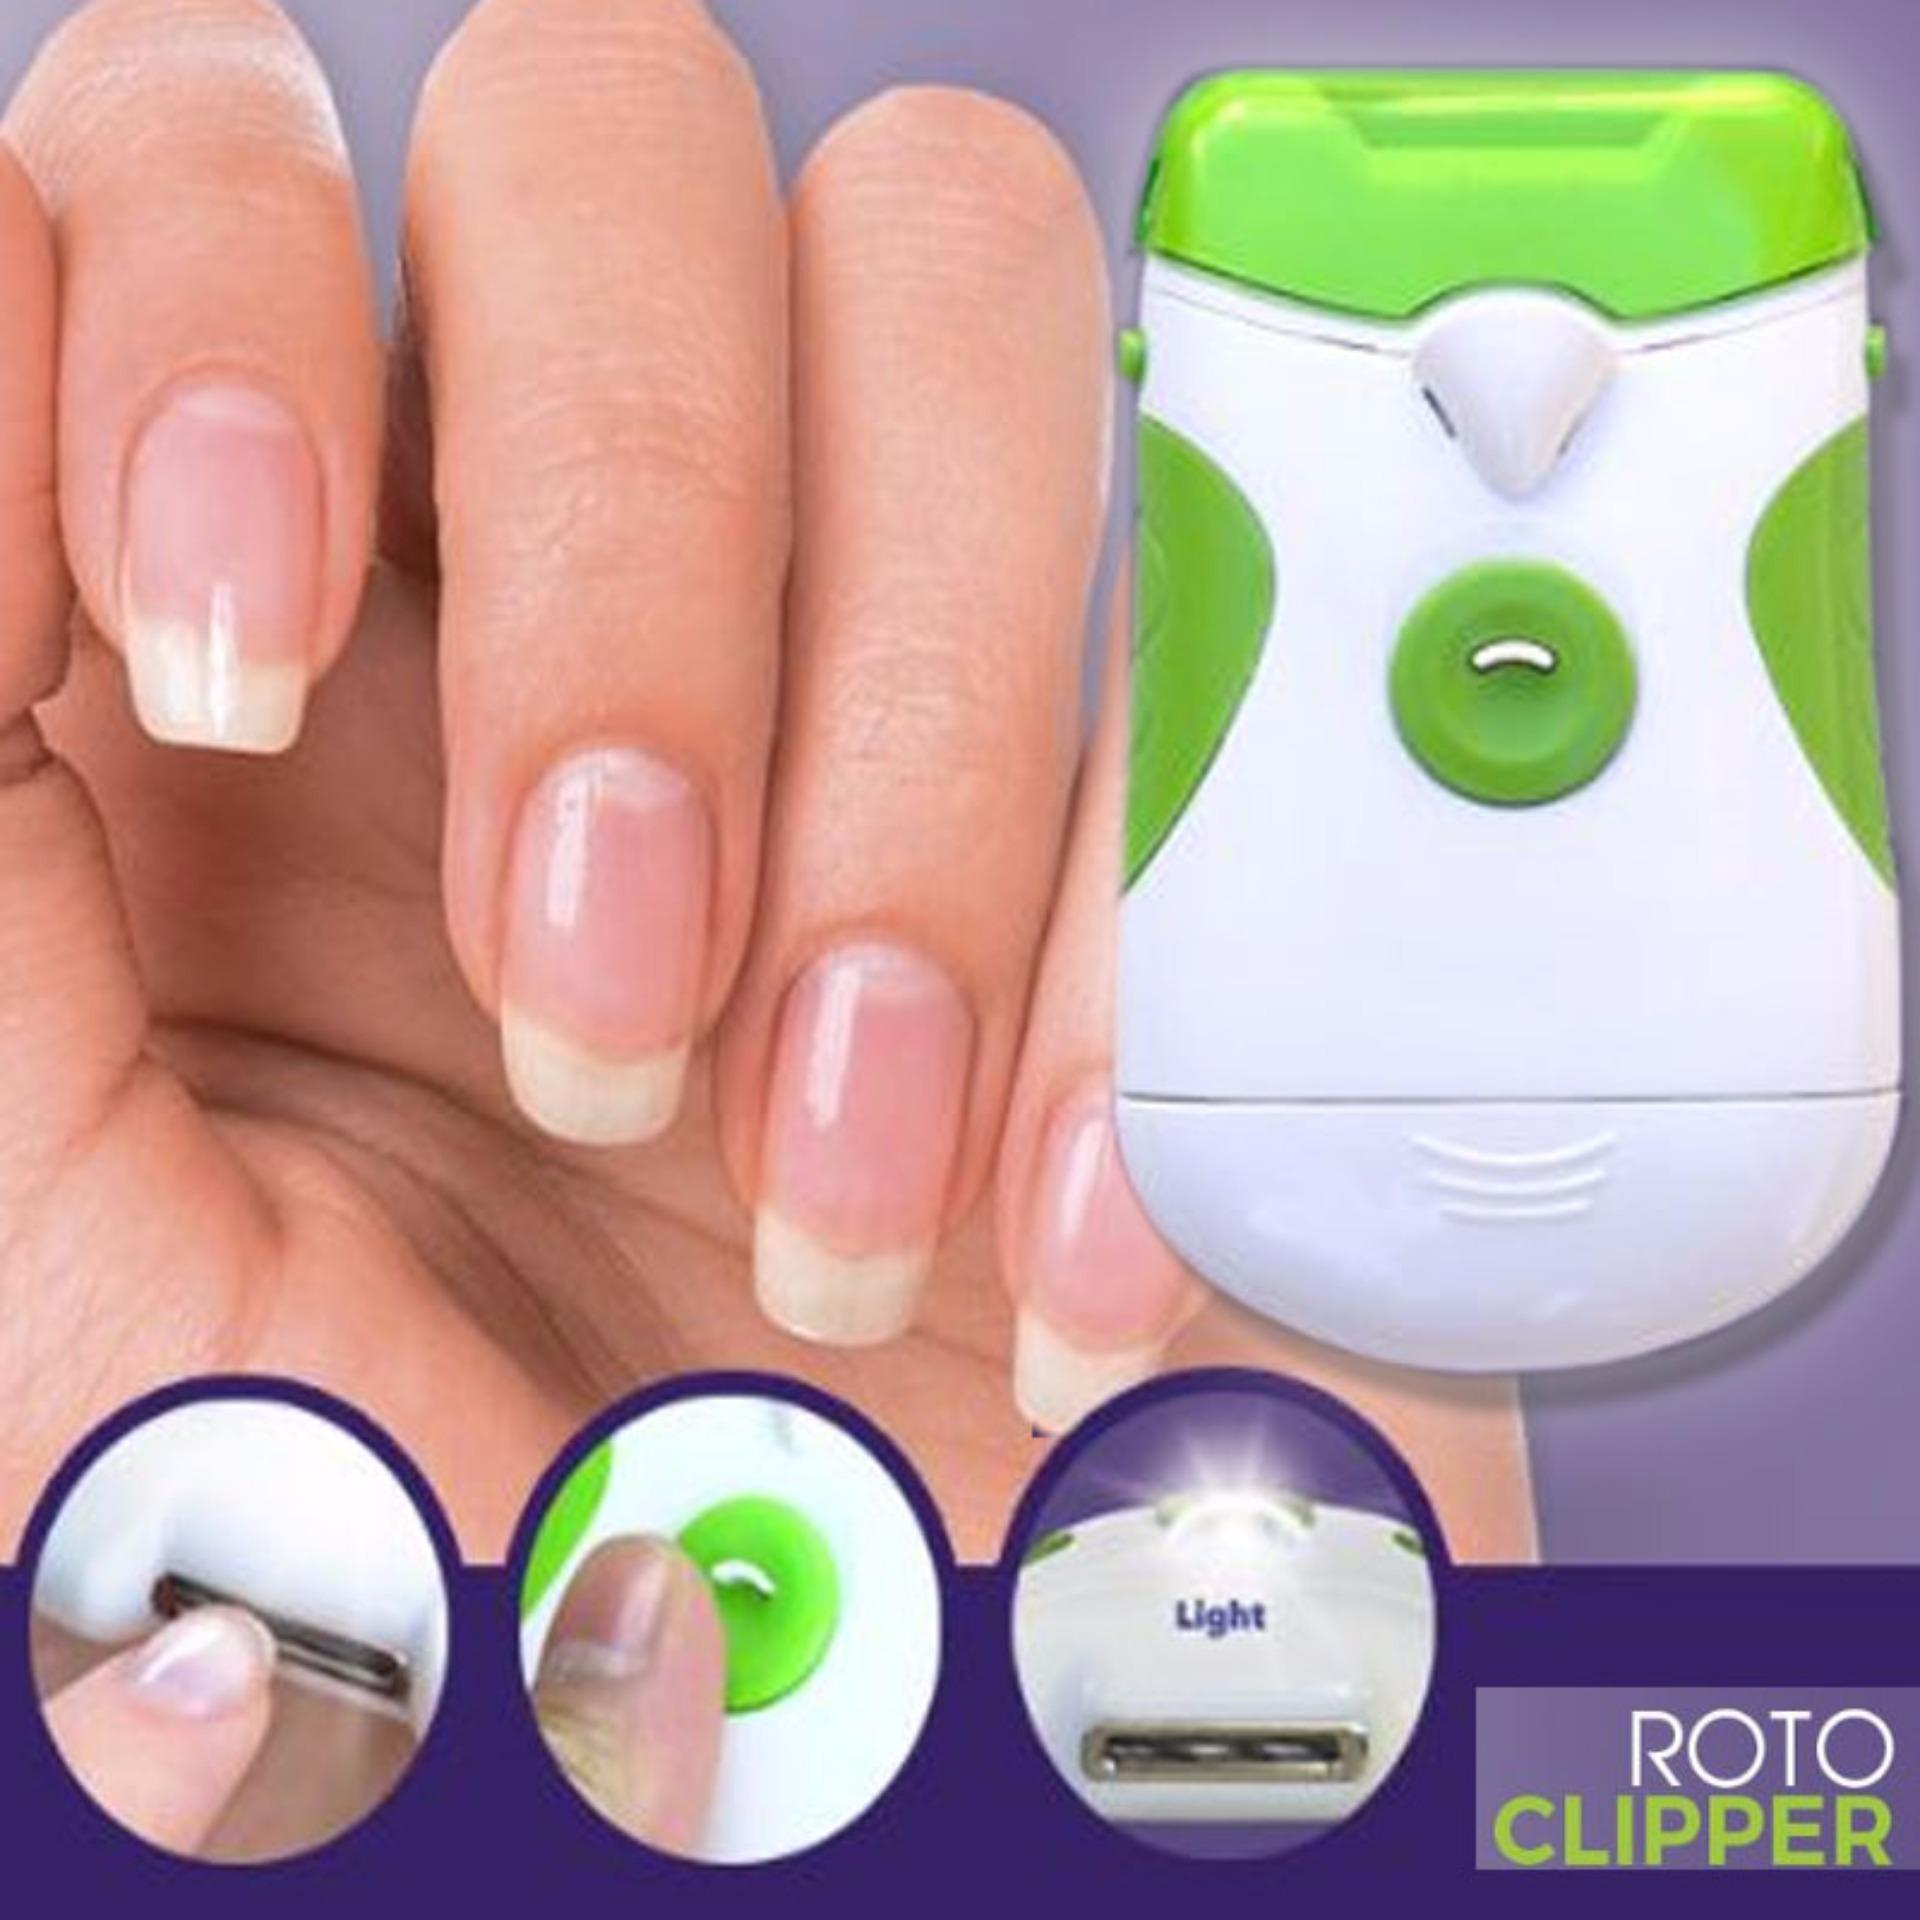 New Nail File System ROTO CLIPPER Electric Nail Trimmer Nail File ...